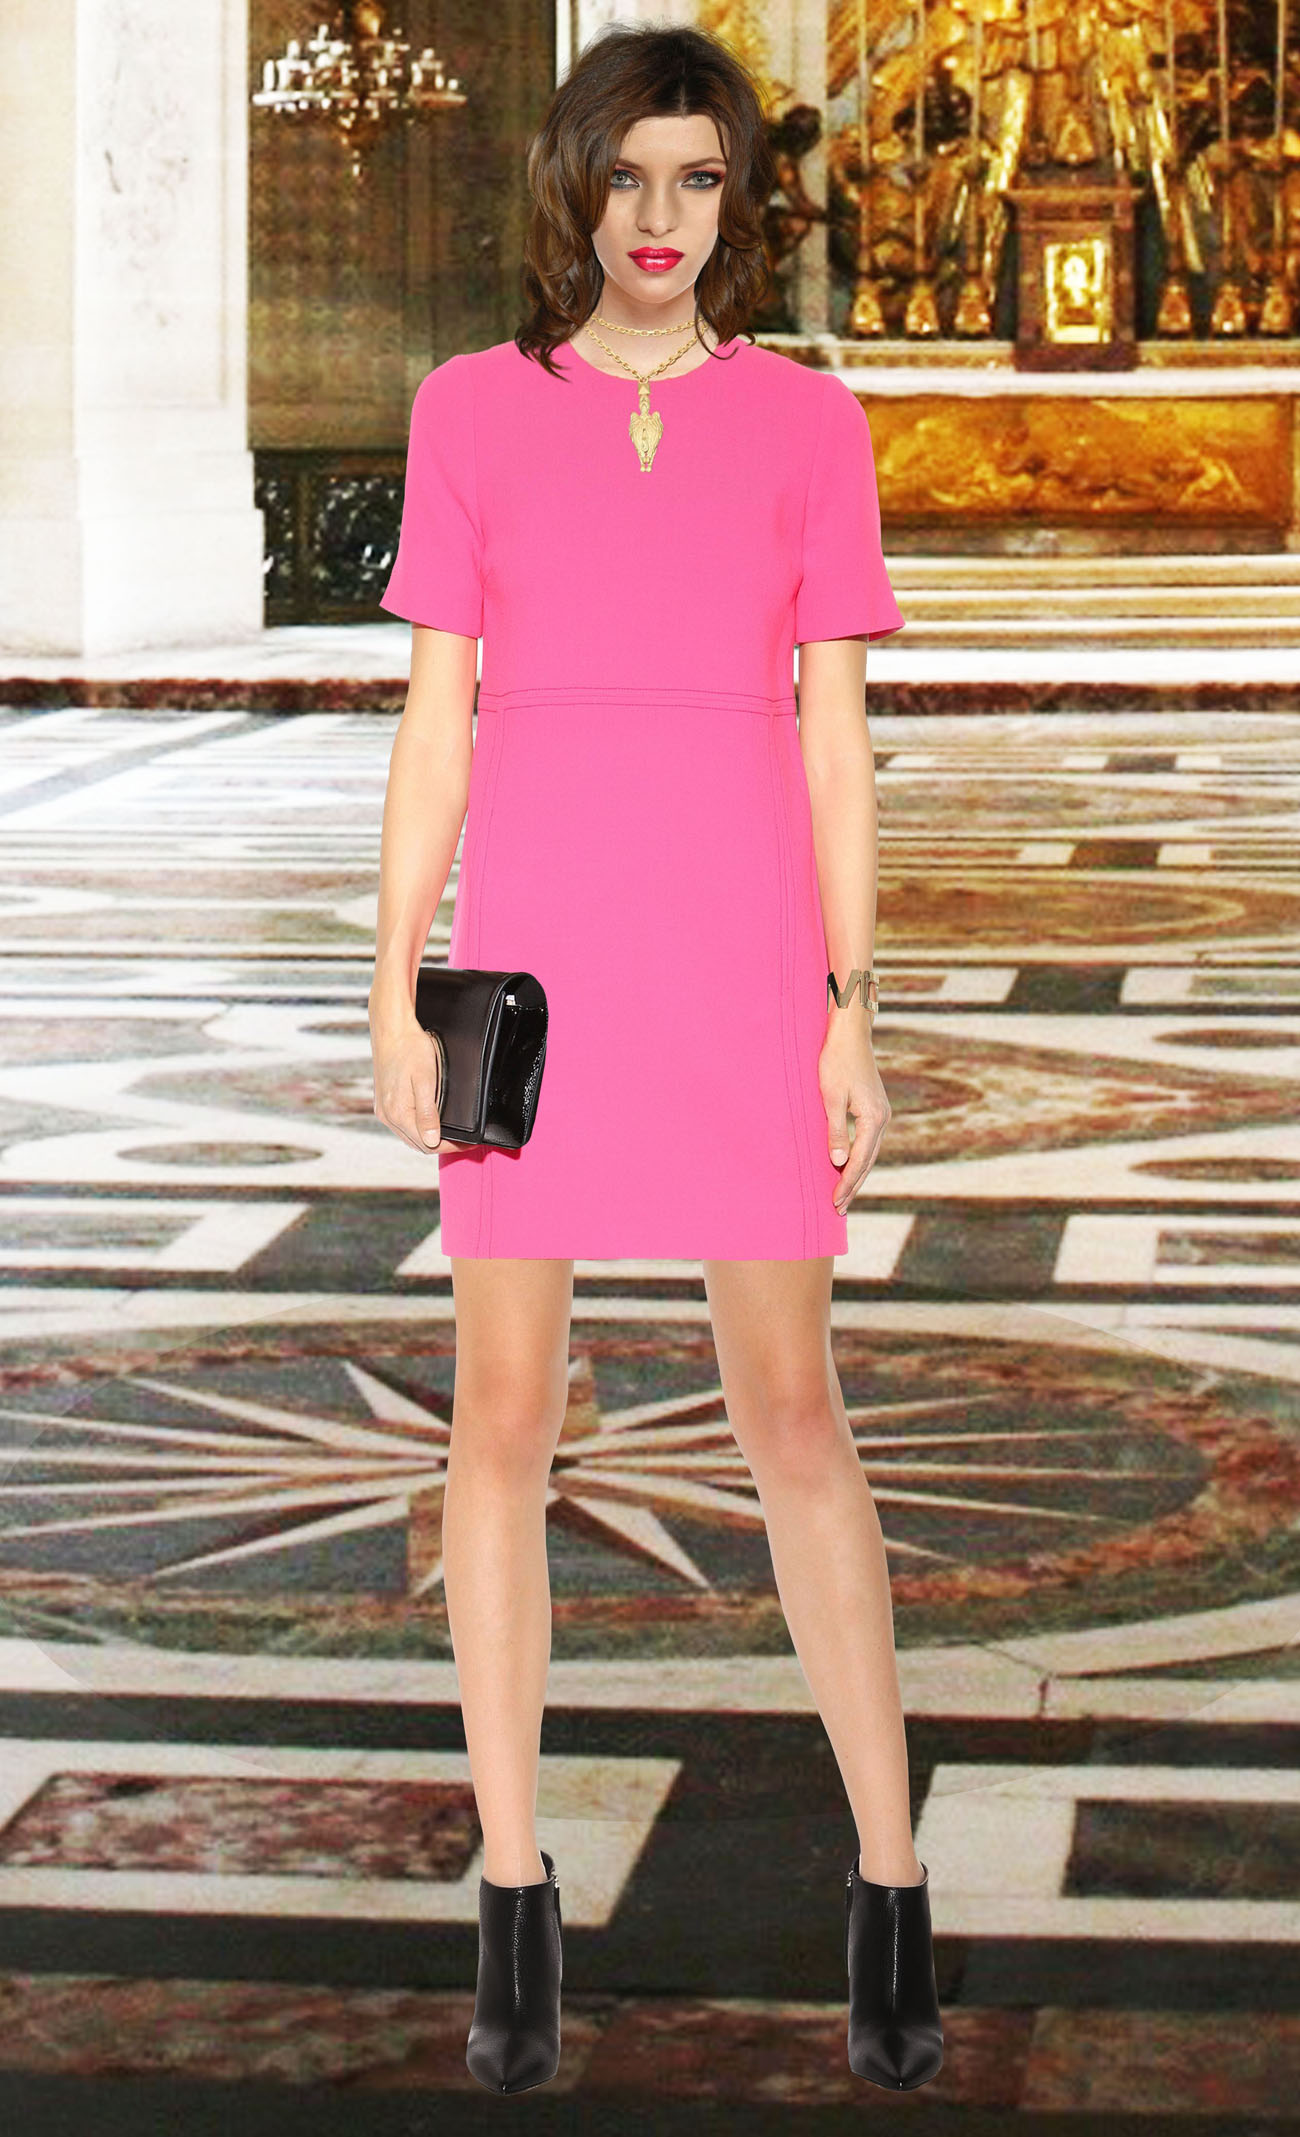 clothing model in pink victoria victoria beckham dress copy cr -  - pink and black sunday